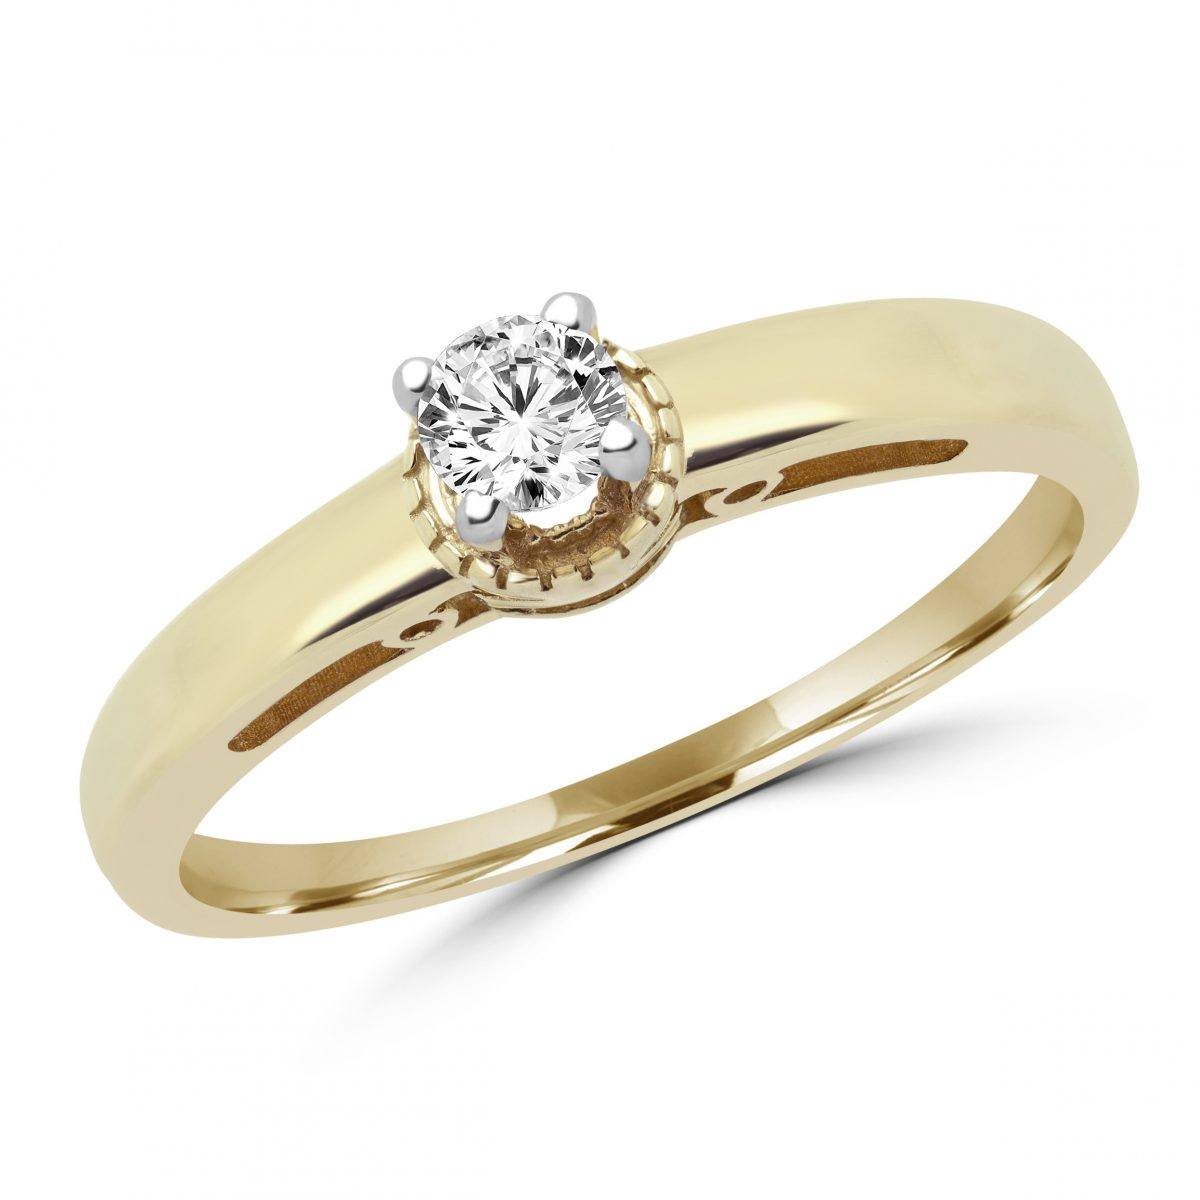 jewellery engagement ring platinum solitaire diamond product ritani jewelry gallery